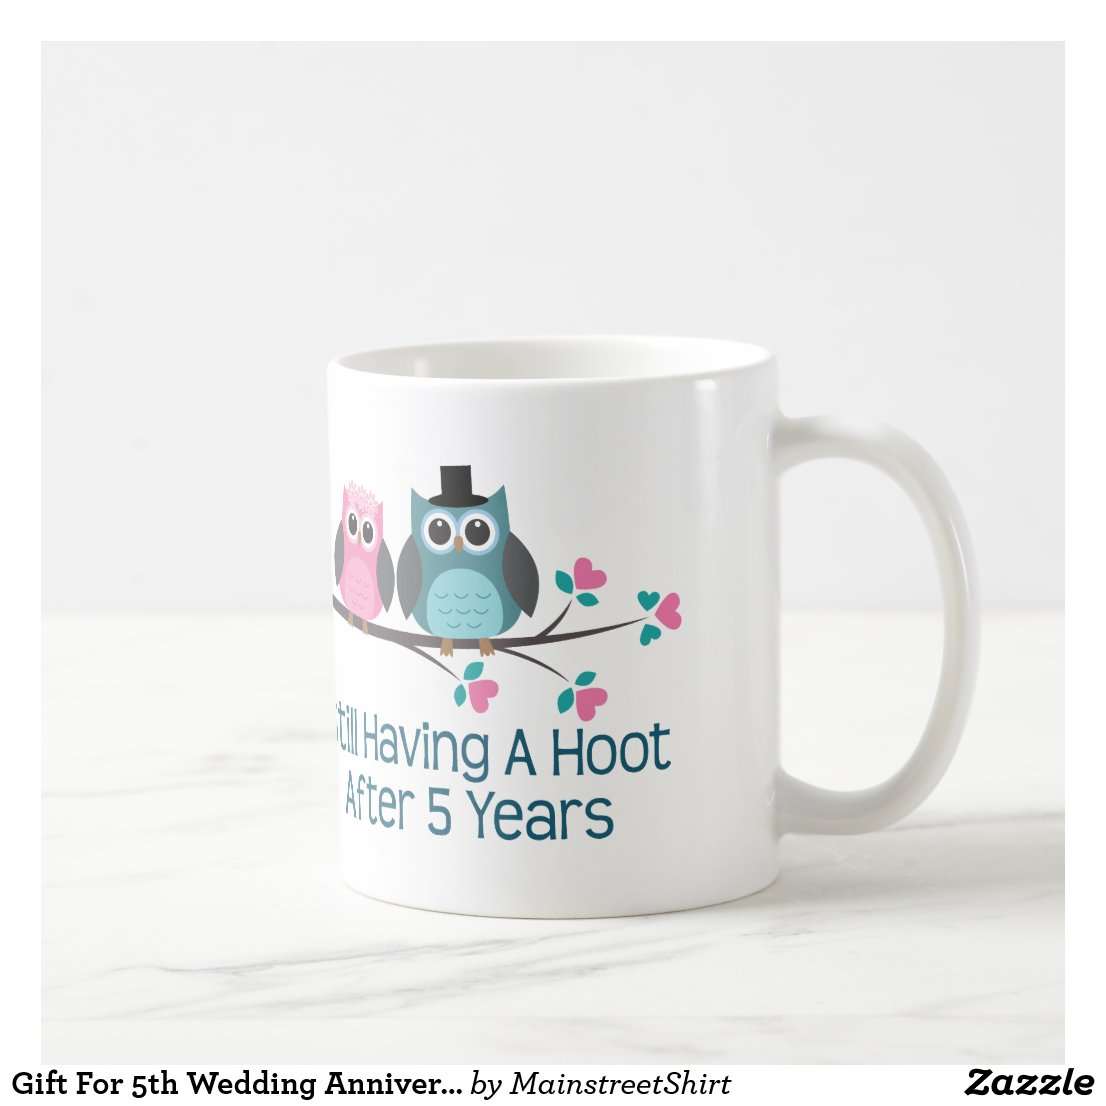 Gift For 5th Wedding Anniversary Hoot Coffee Mug